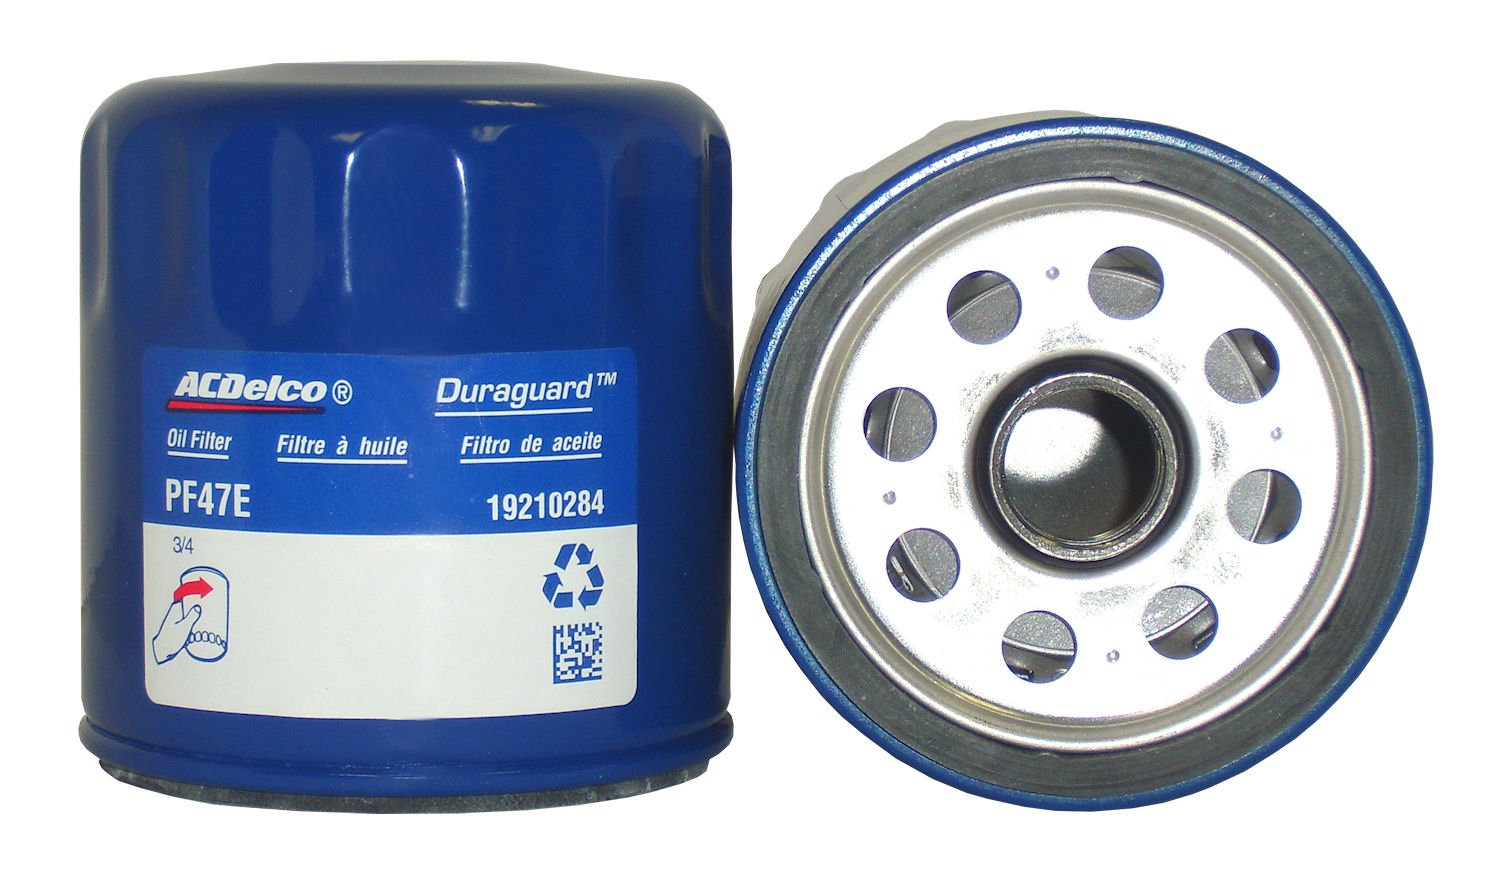 silverado  u00bb 2000 chevy silverado oil filter